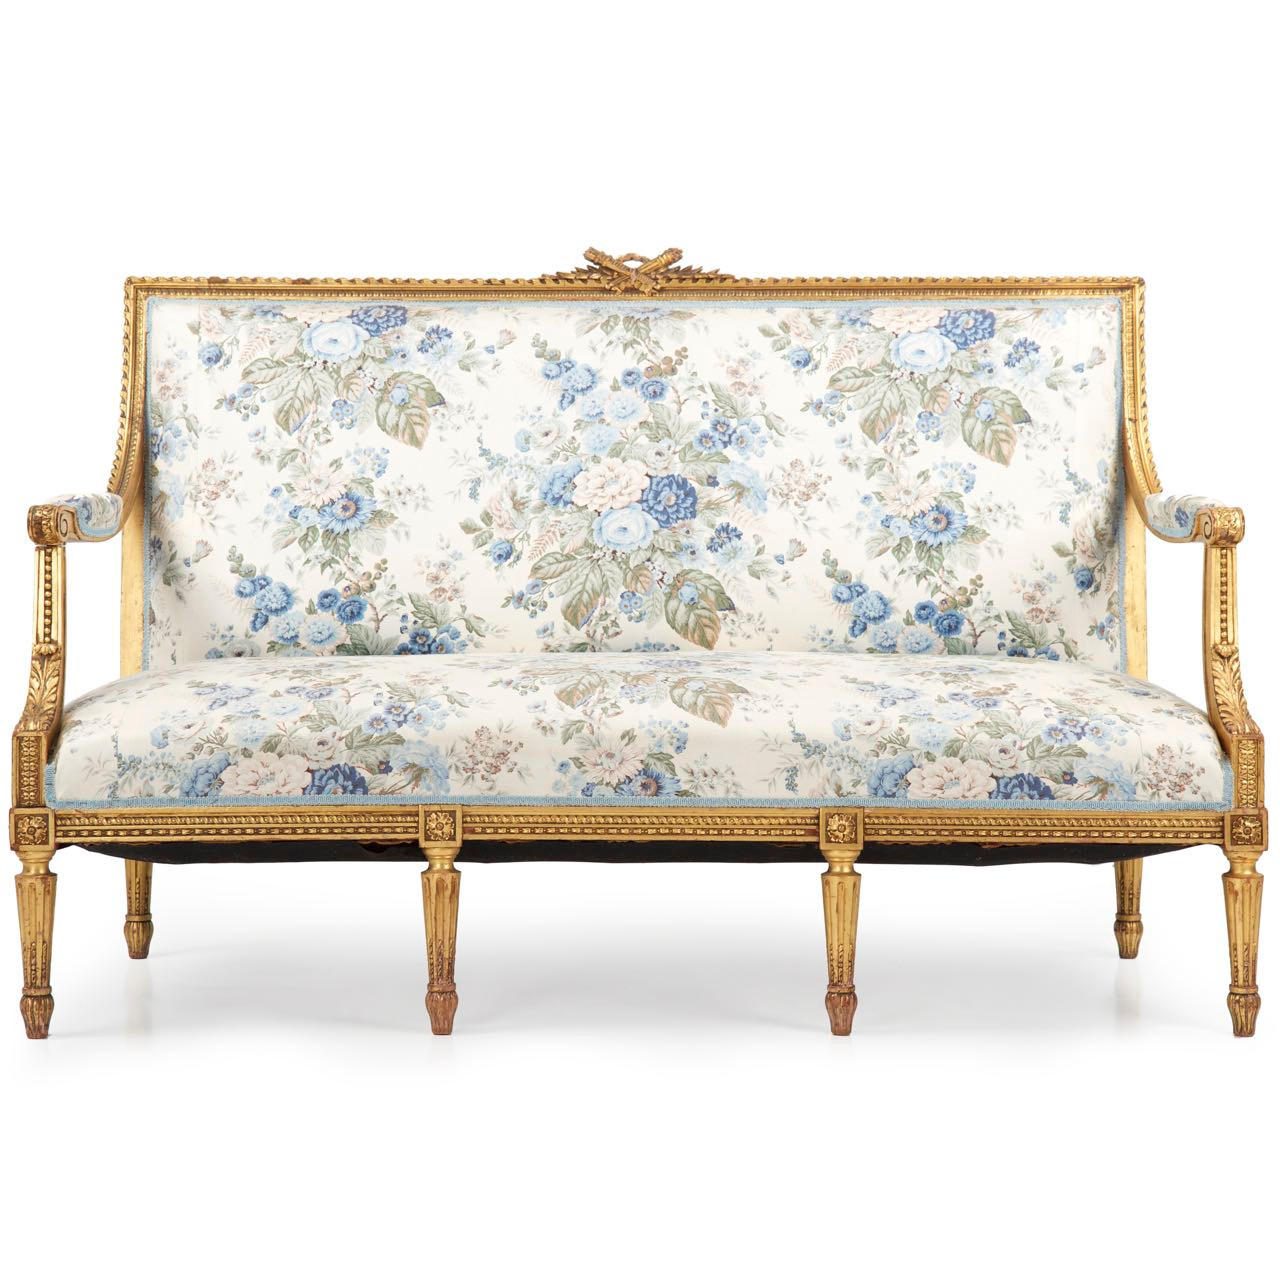 Big Sofa Vintage Look French Louis Xvi Carved Giltwood Antique Settee C 1900